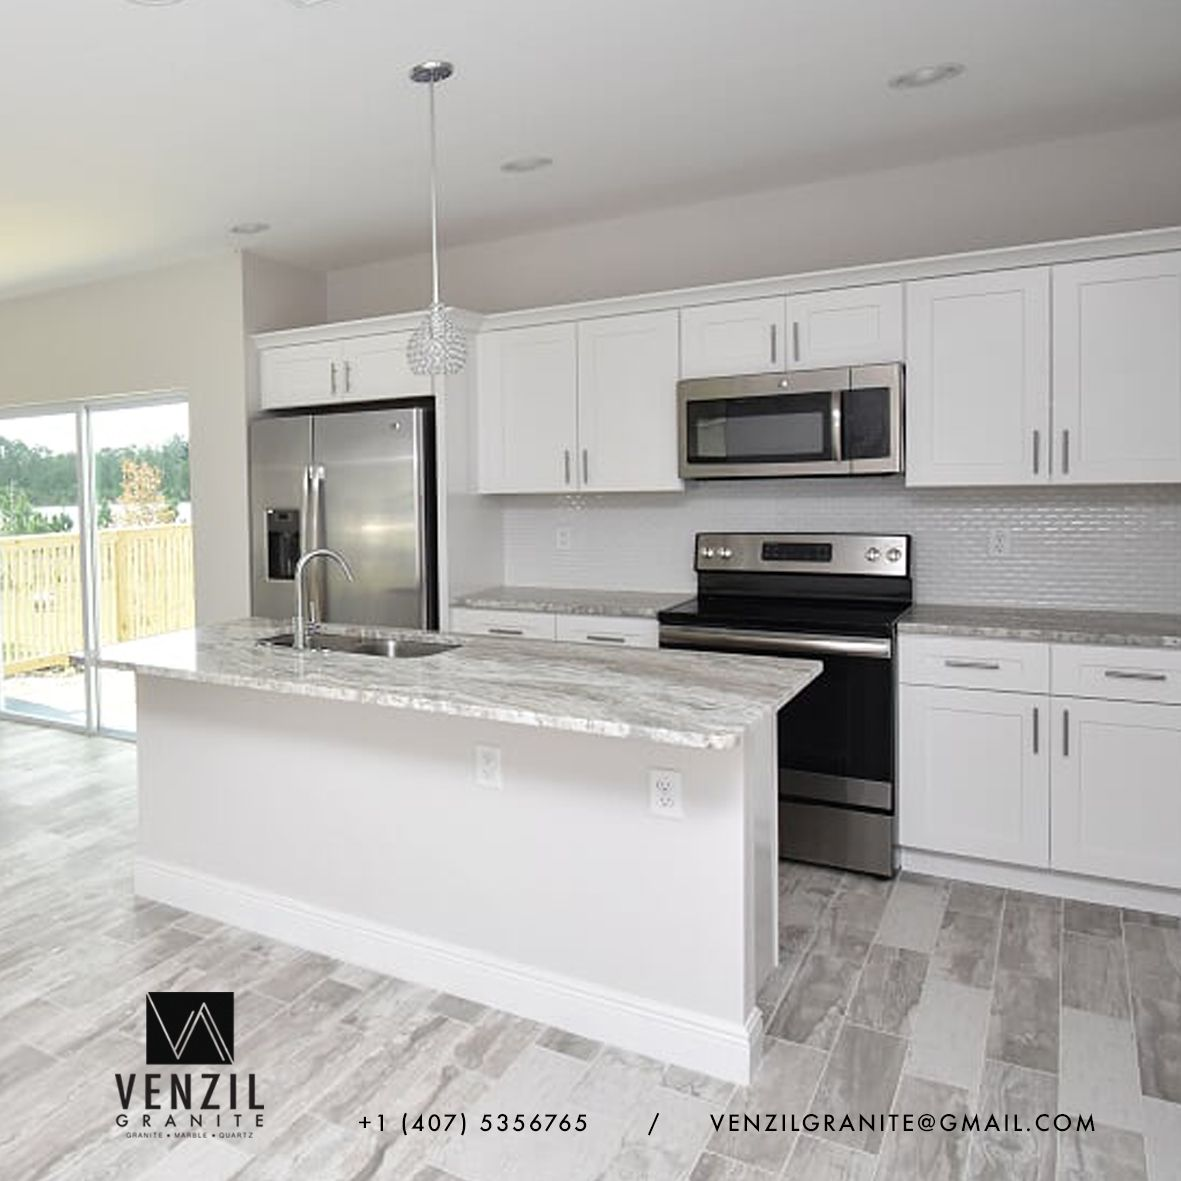 The Best Quality Countertops And Cabinets For Your Dreamkitchen Contact Us For An Estimate 1 407 5356765 Venzilgranit Countertops Dream Kitchen Kitchen